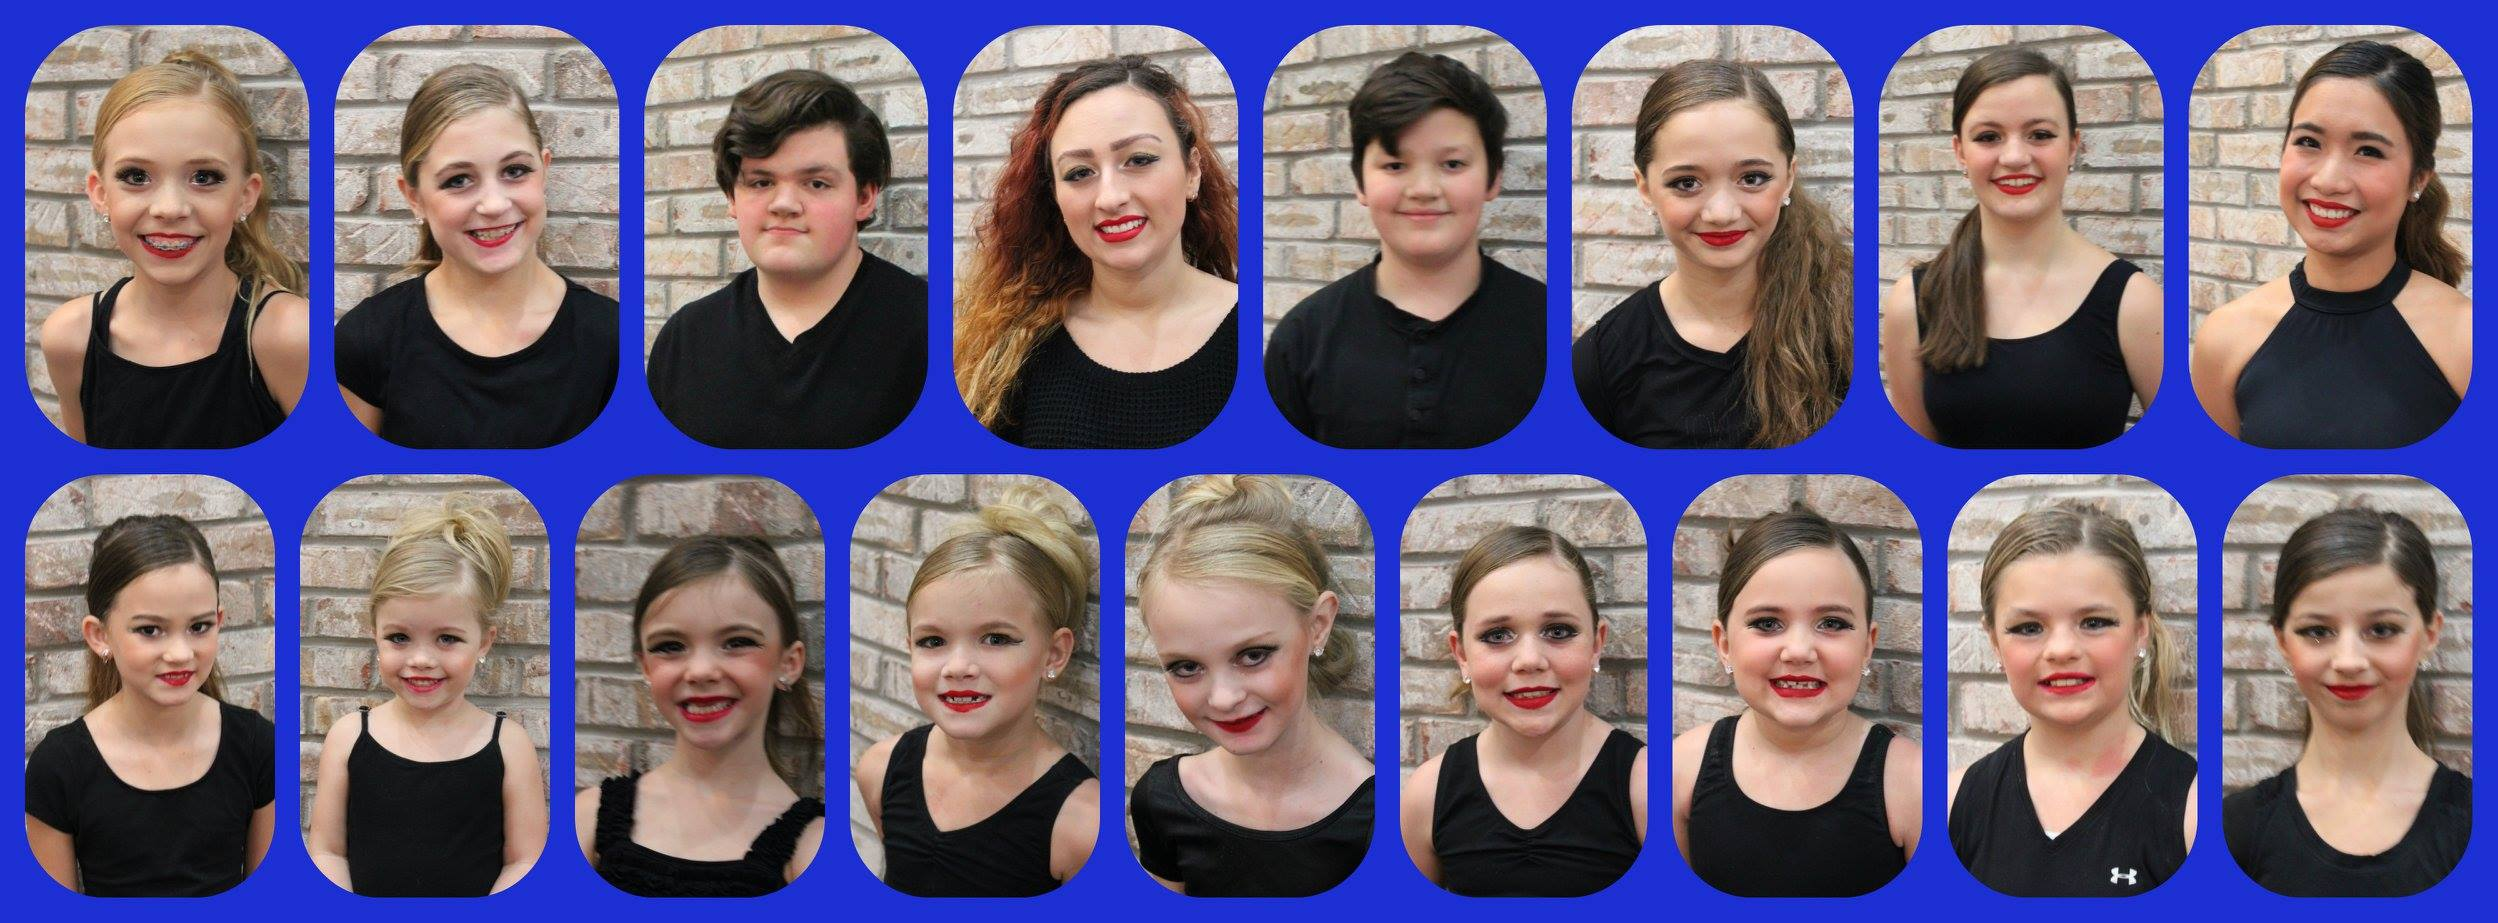 2017 Competition Team